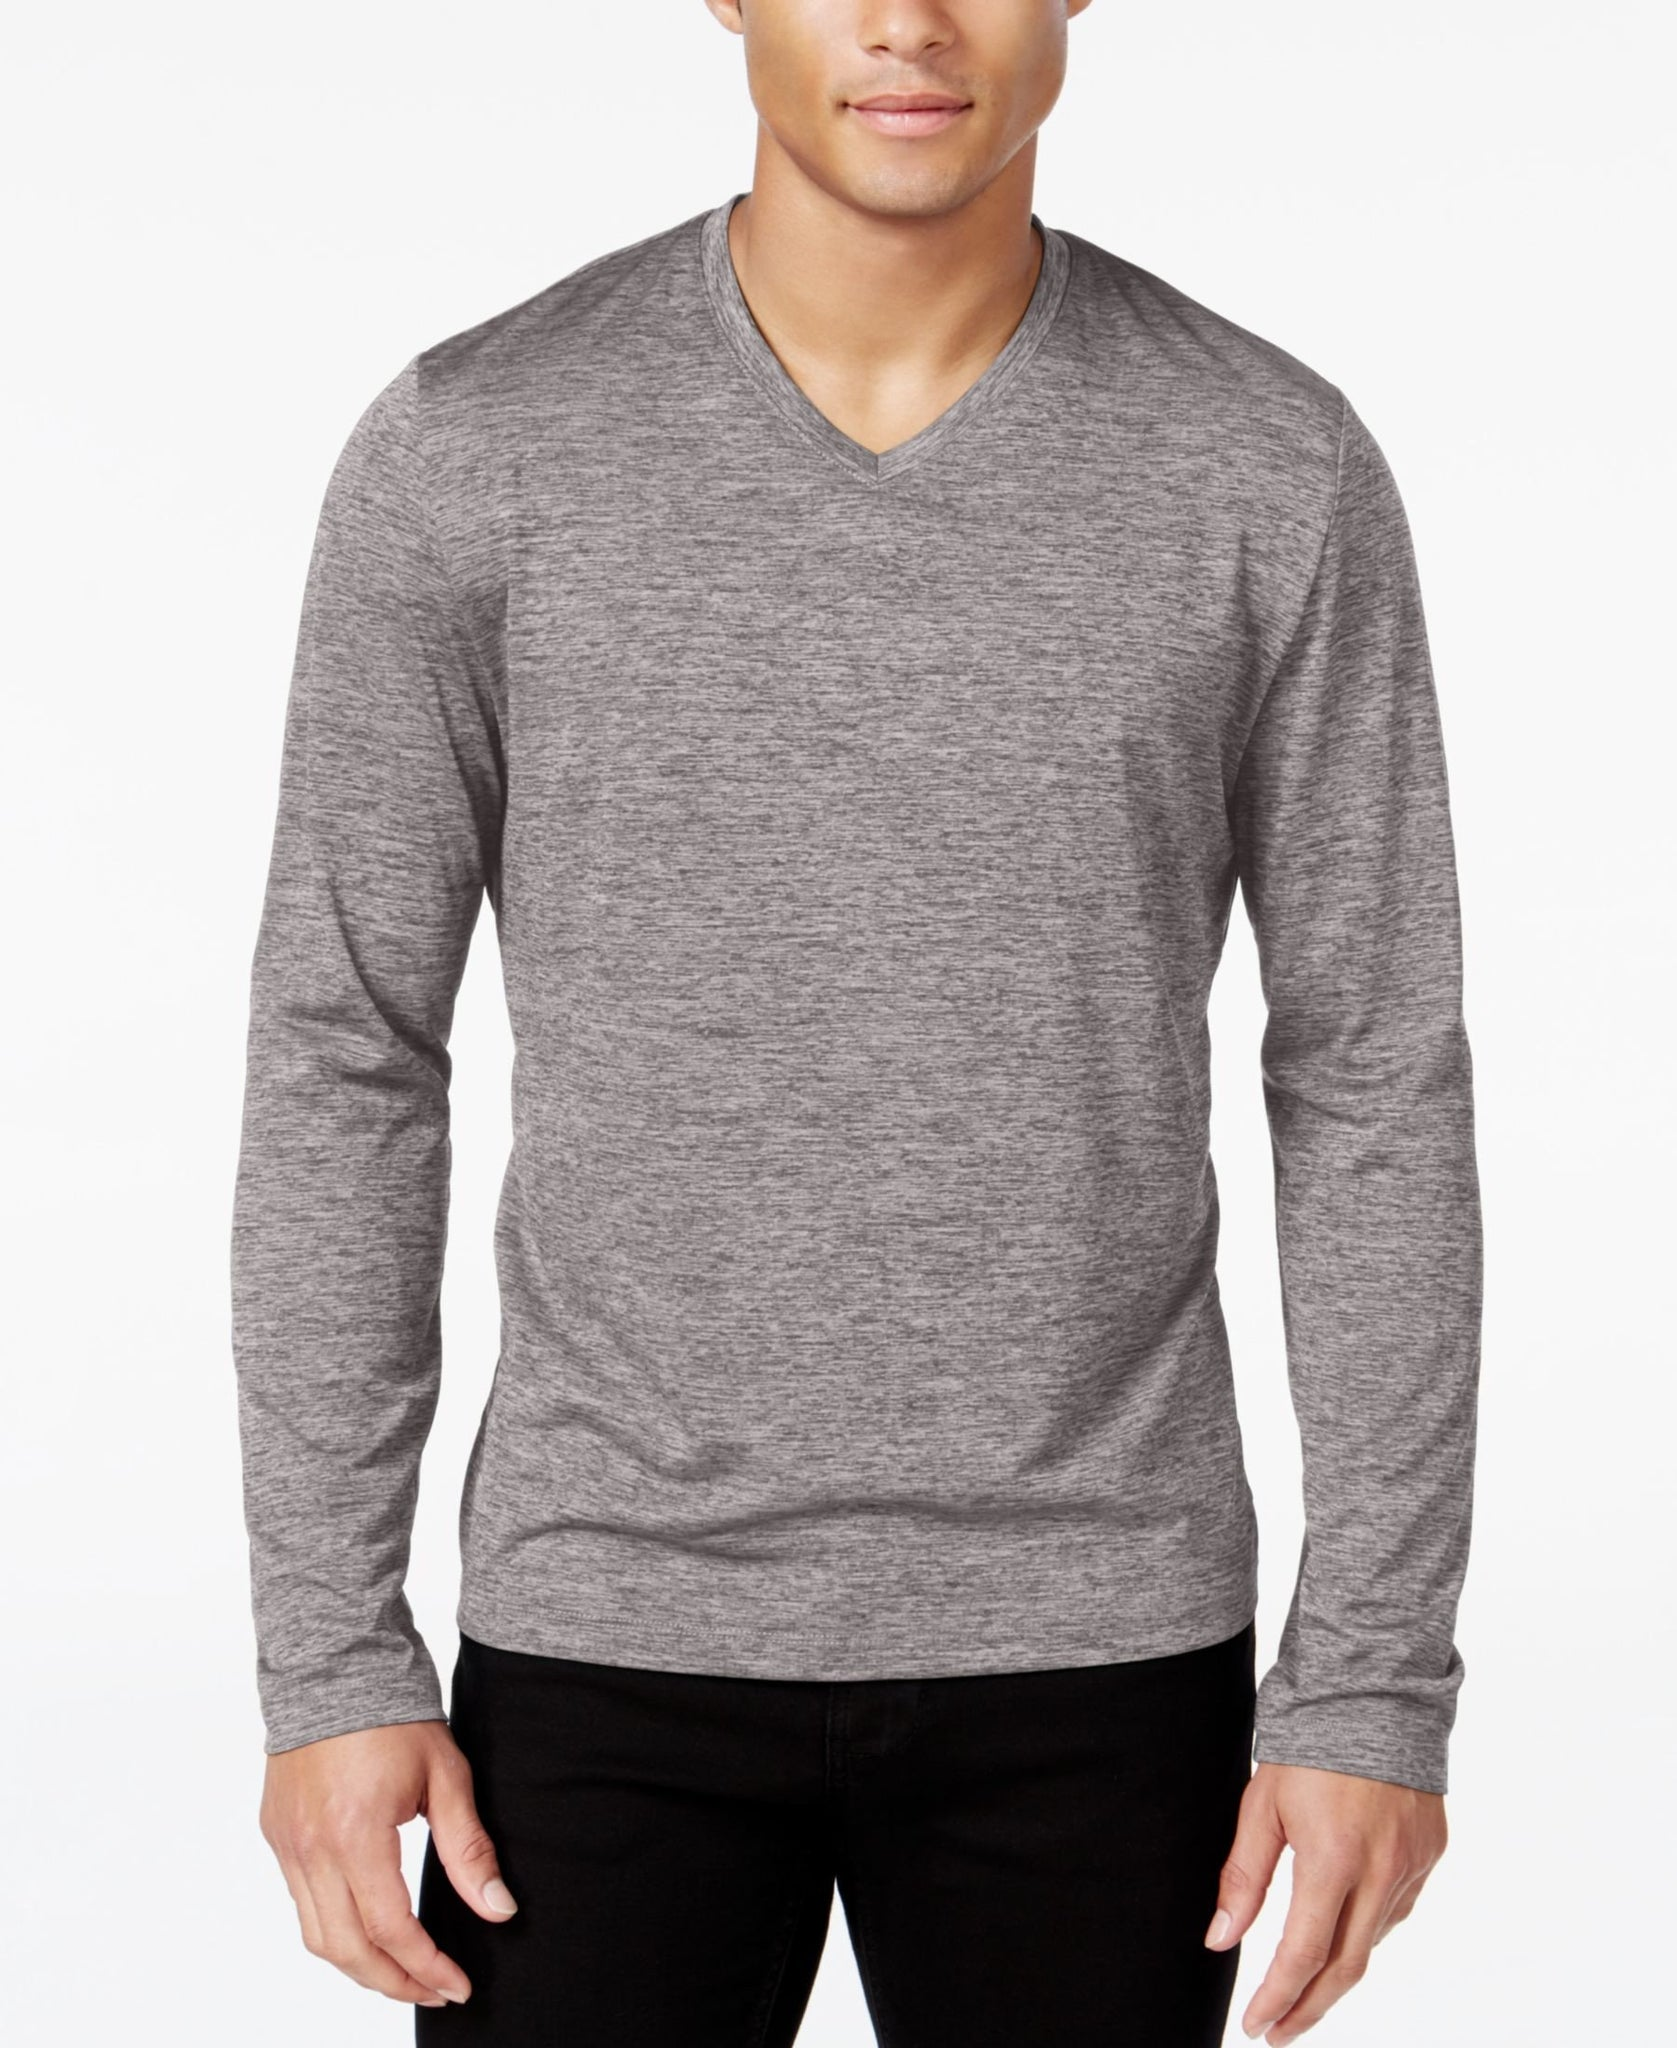 Alfani Men's Big & Tall Performance V-Neck Long-Sleeve T-Shirt